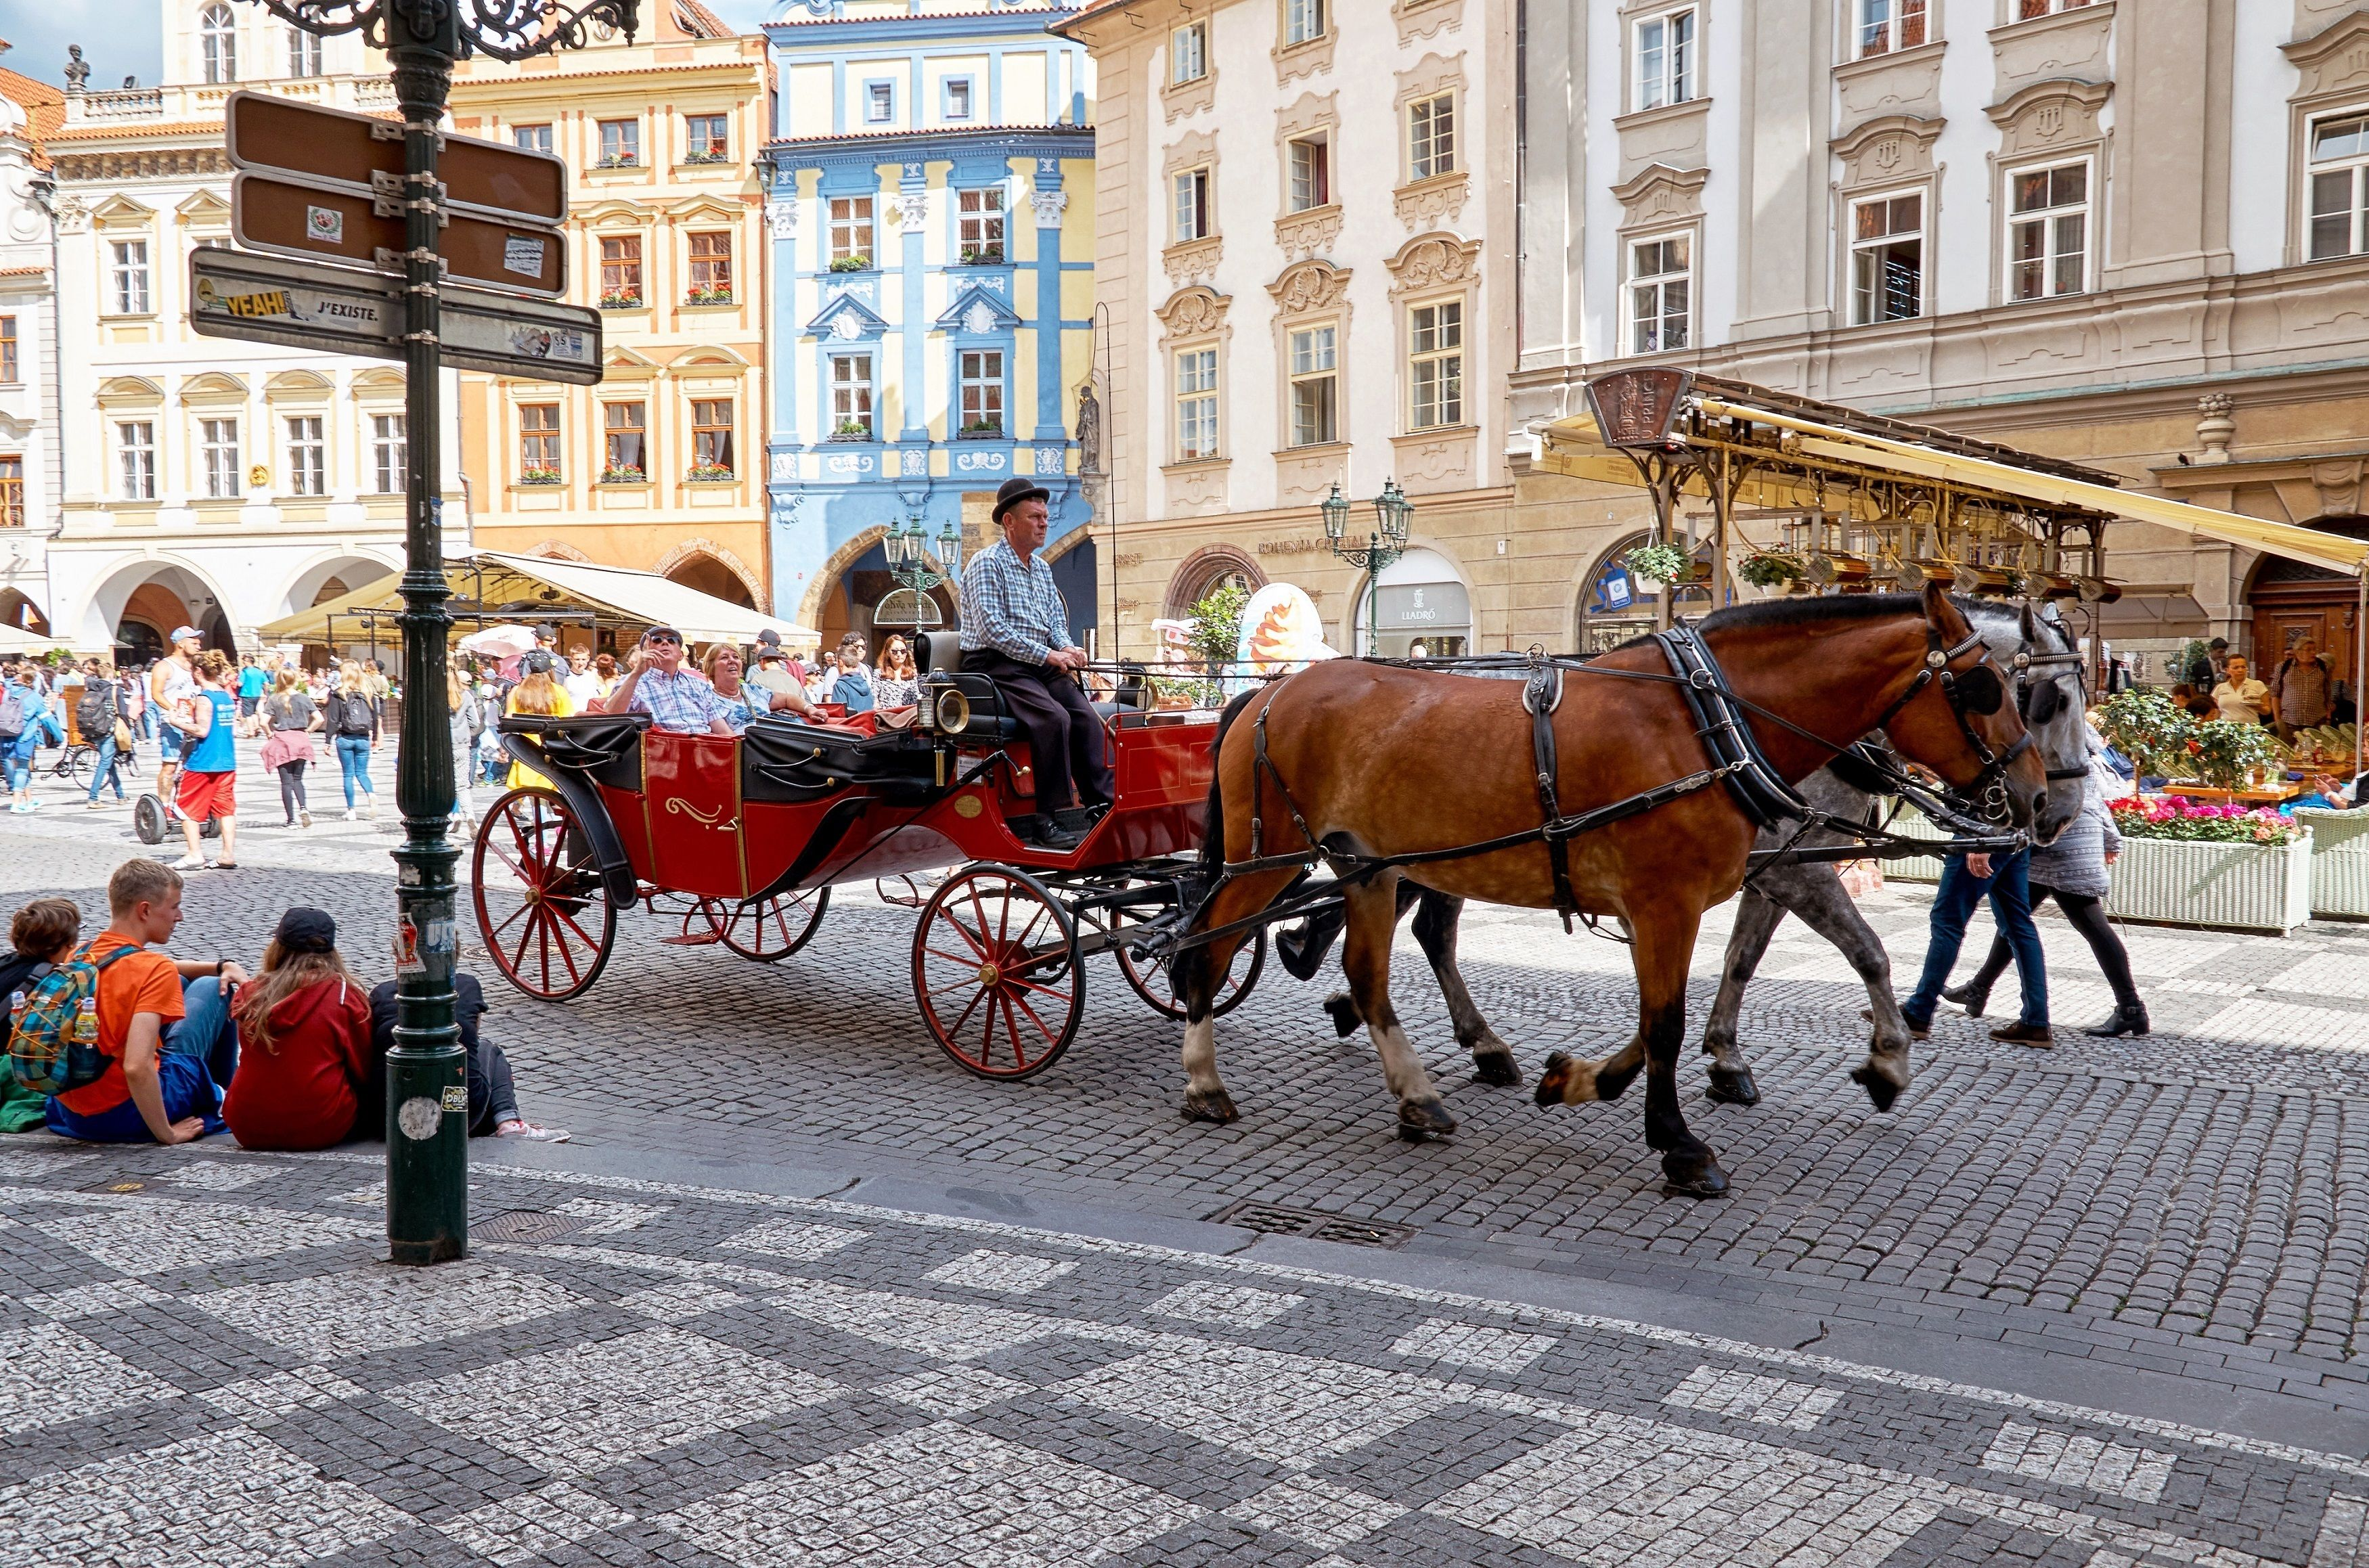 Guests on a horse drawn carriage on the streets of the Old Town Square in Prague